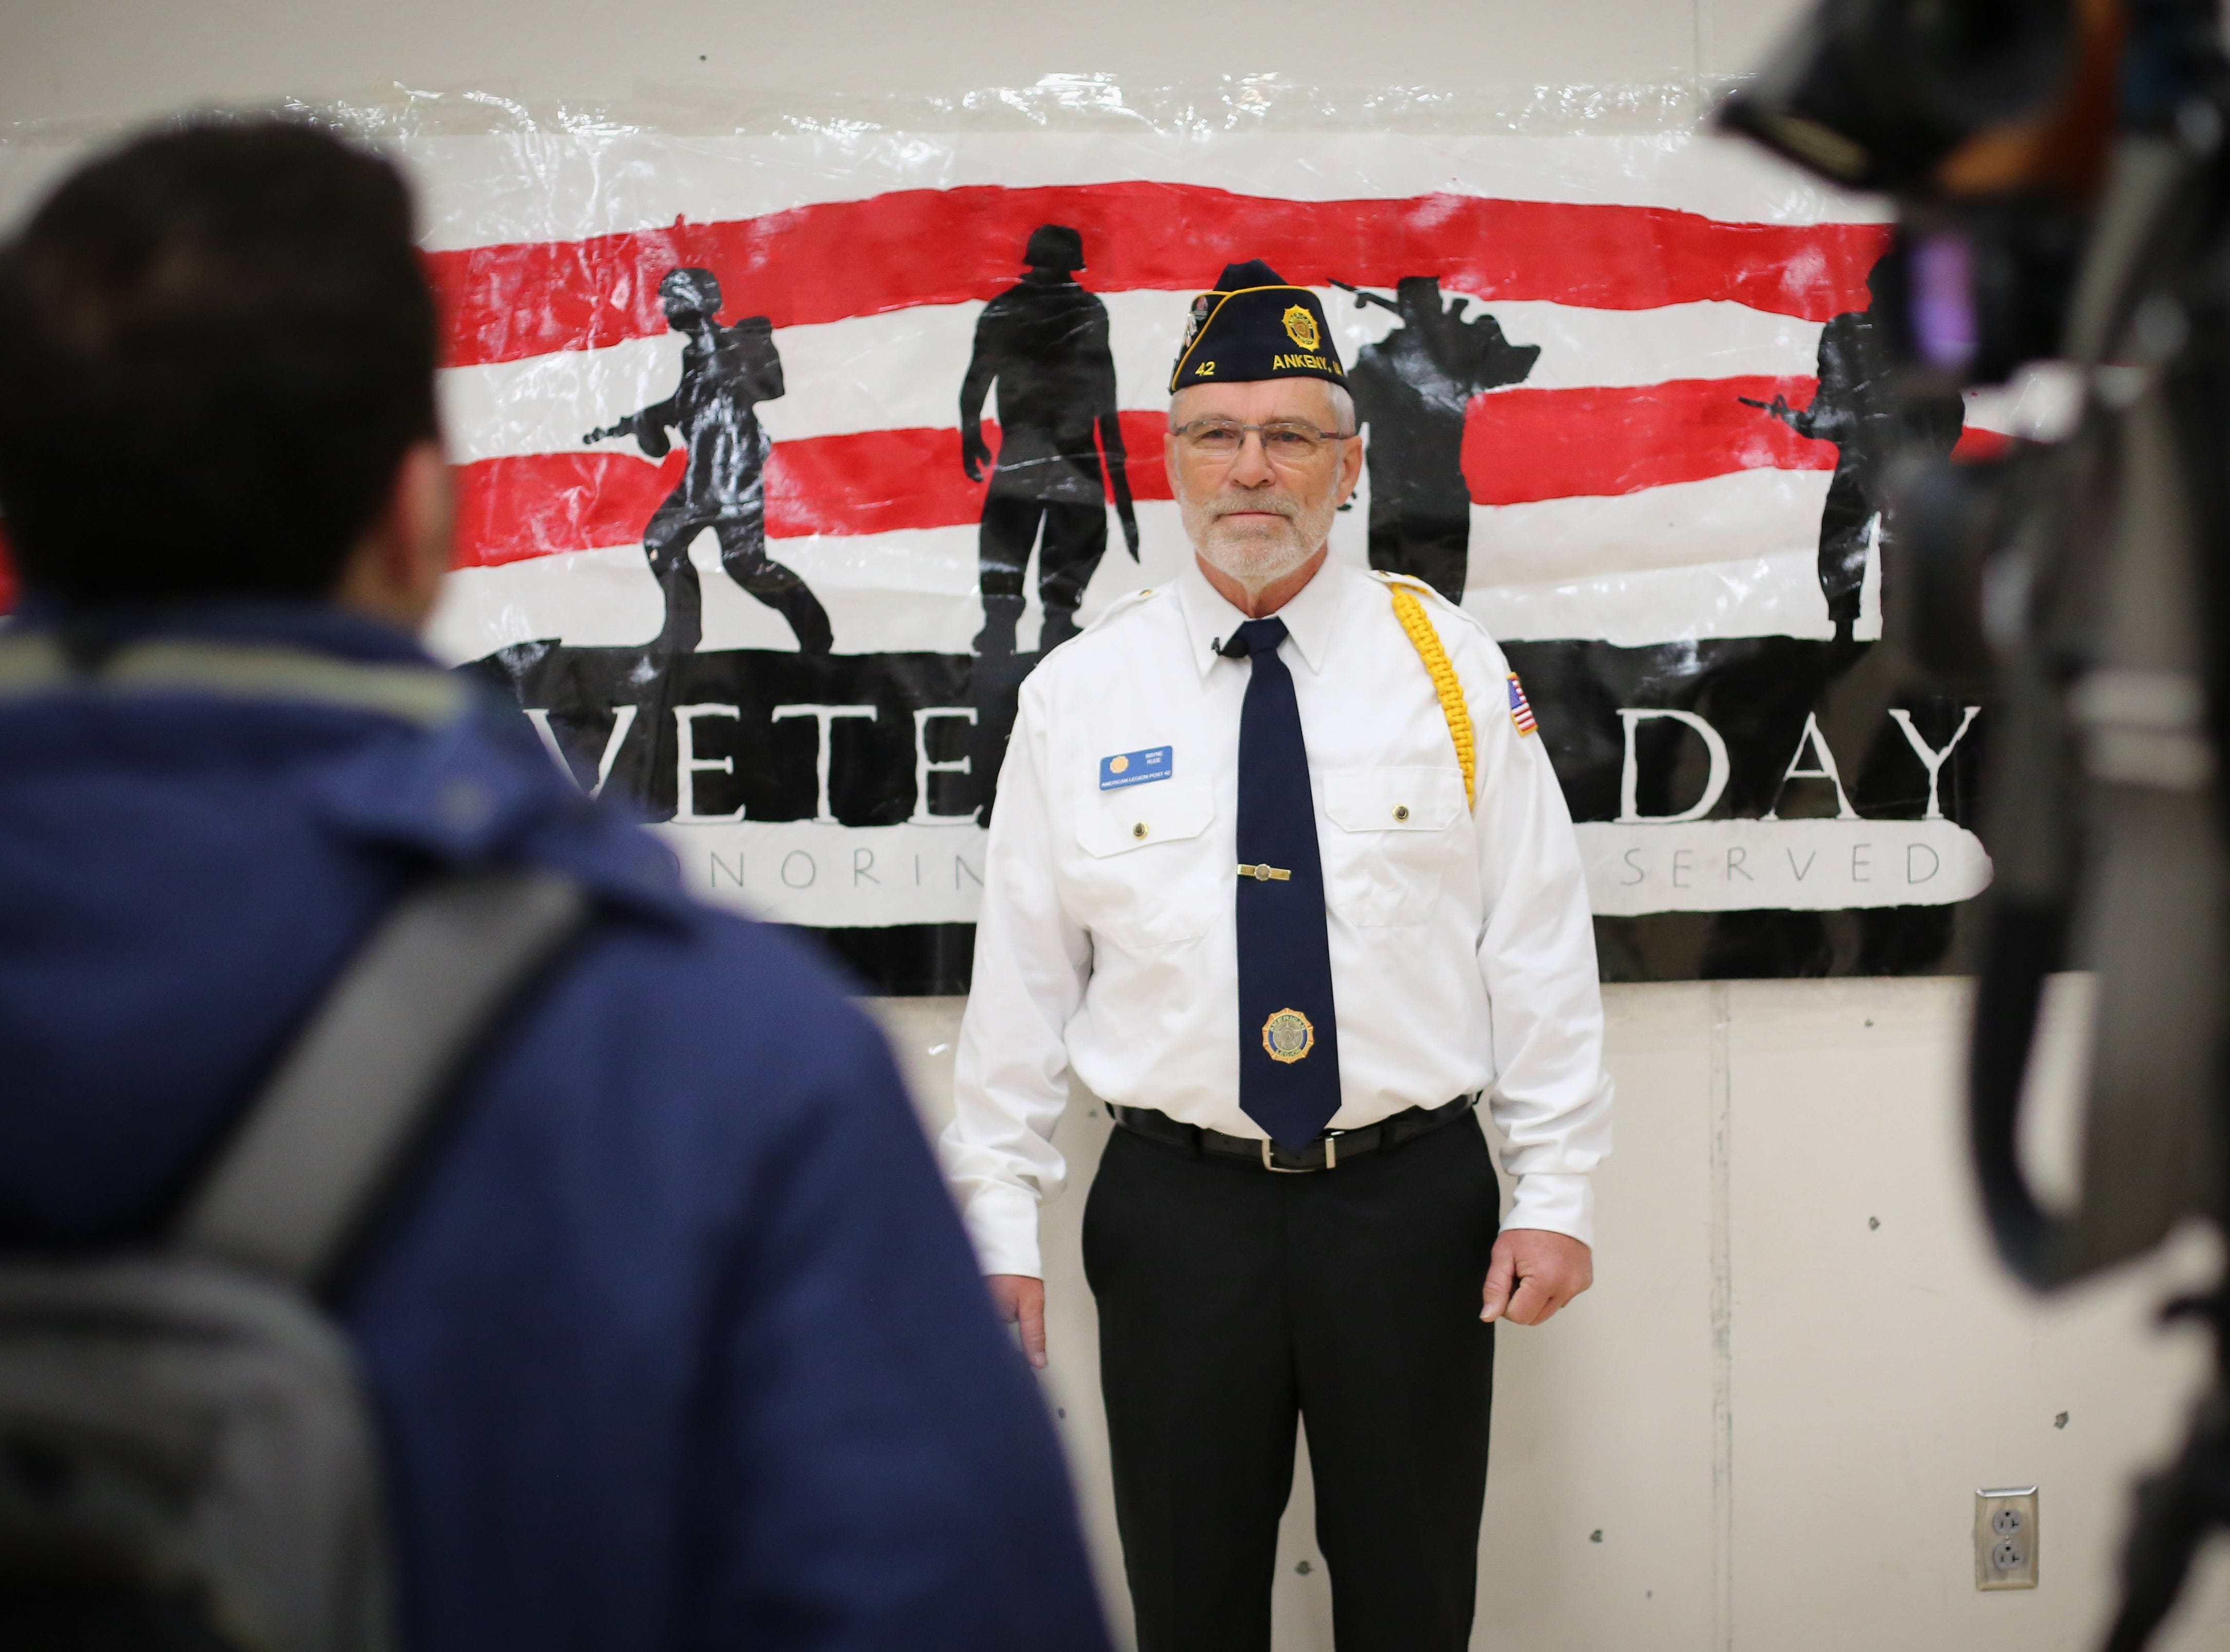 Wayne Rude, who served in the Marine Corps, is interviewed during Veterans Day Breakfast at Northview Middle School on Wednesday, Nov. 14, 2018 in Ankeny, Iowa.